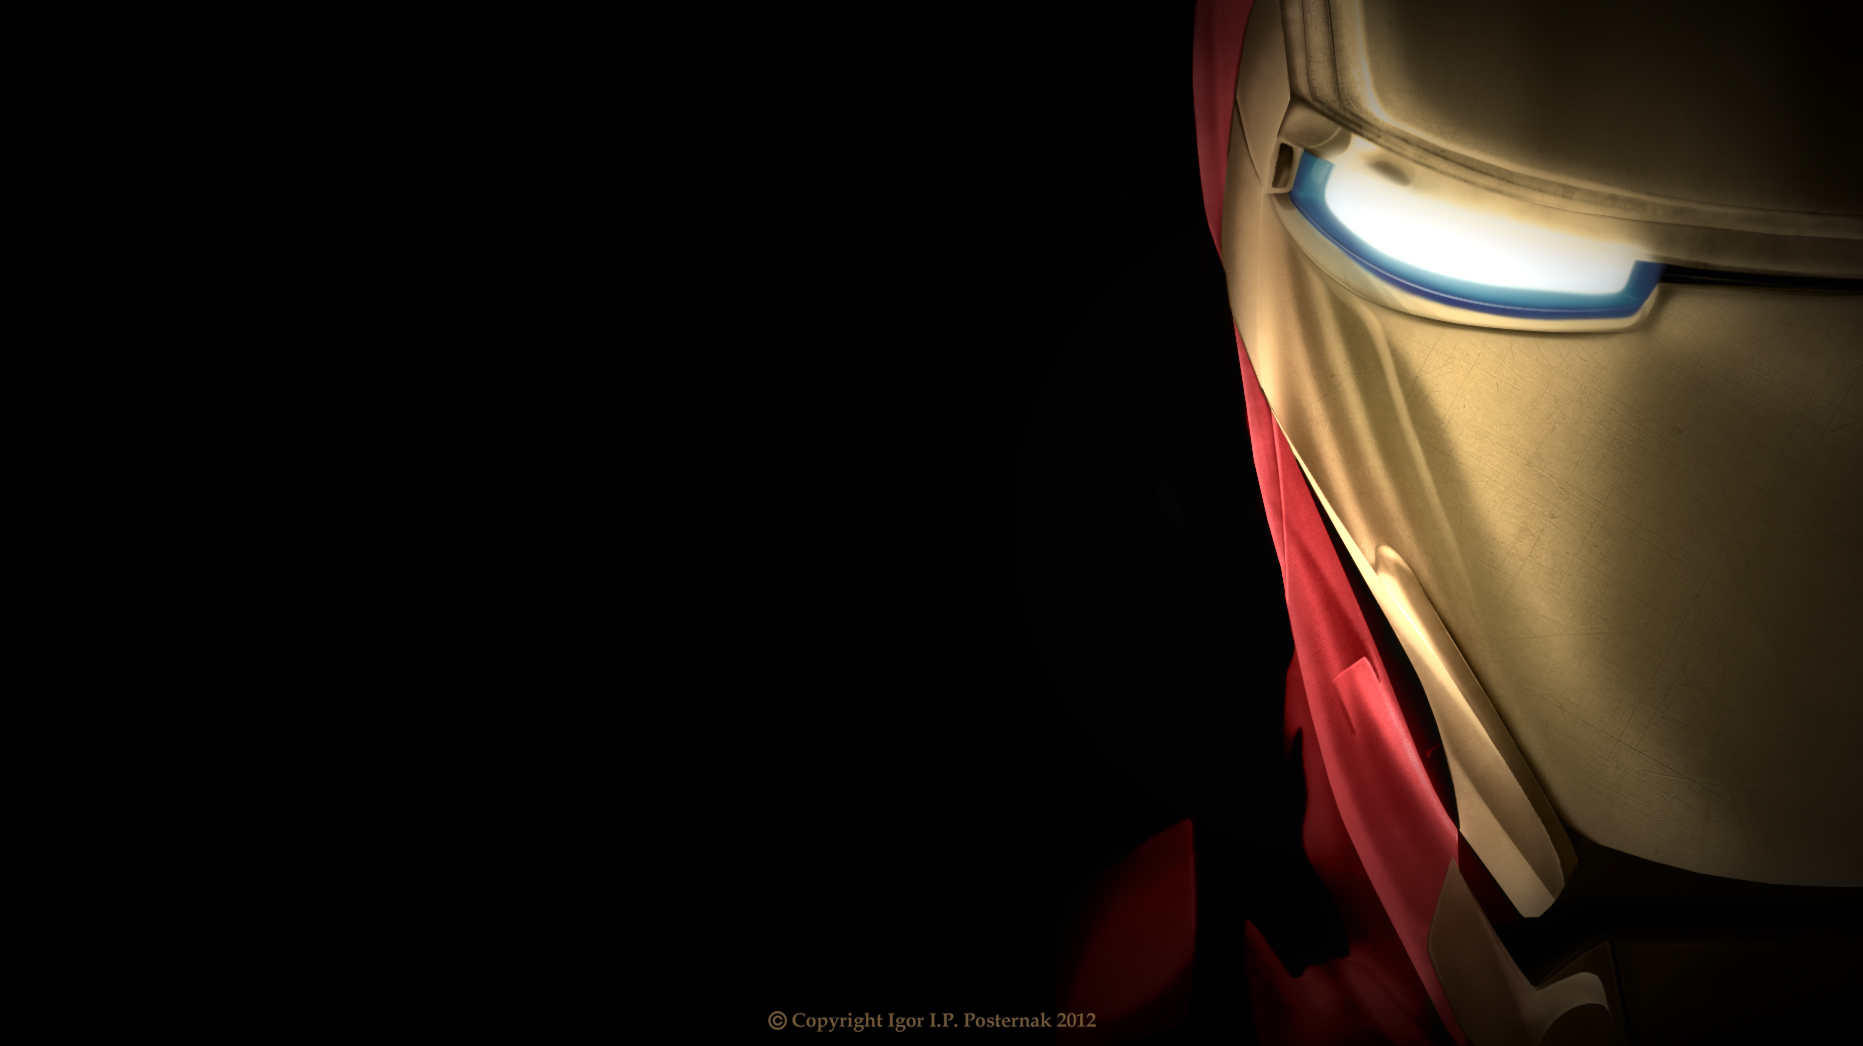 Awesome Backgrounds For Guys Awesome ironman wallpaper 1863x1046